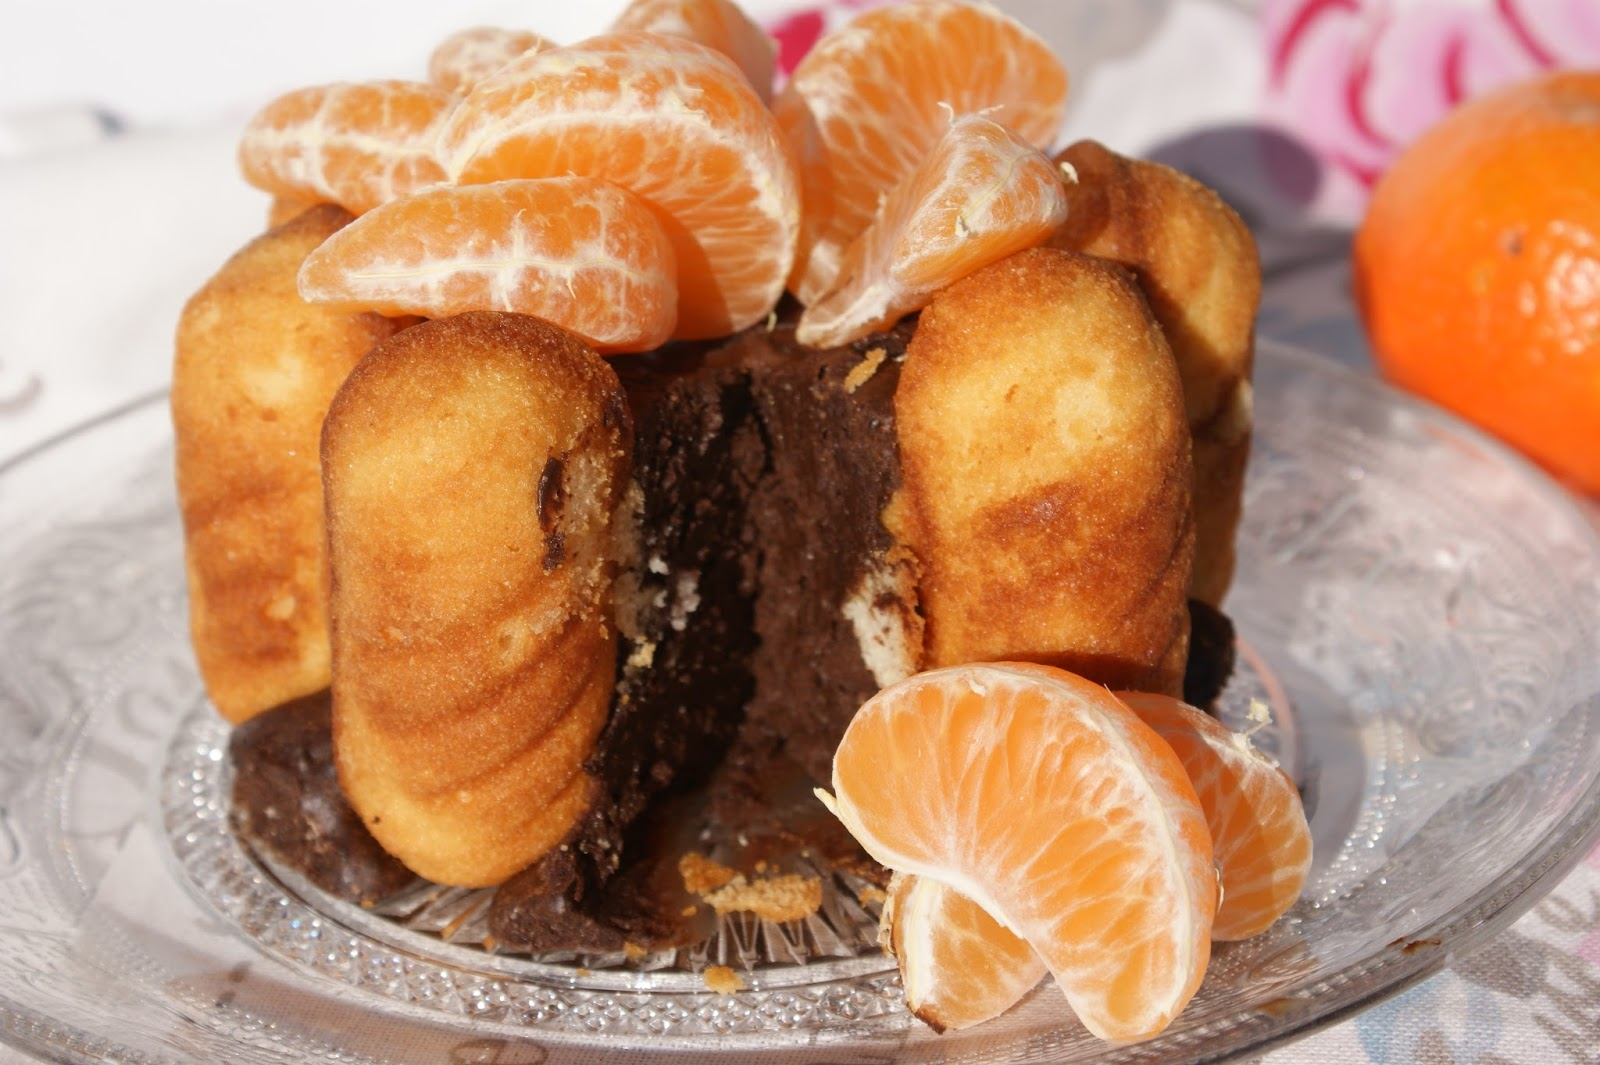 charlotte inratable aux clementines